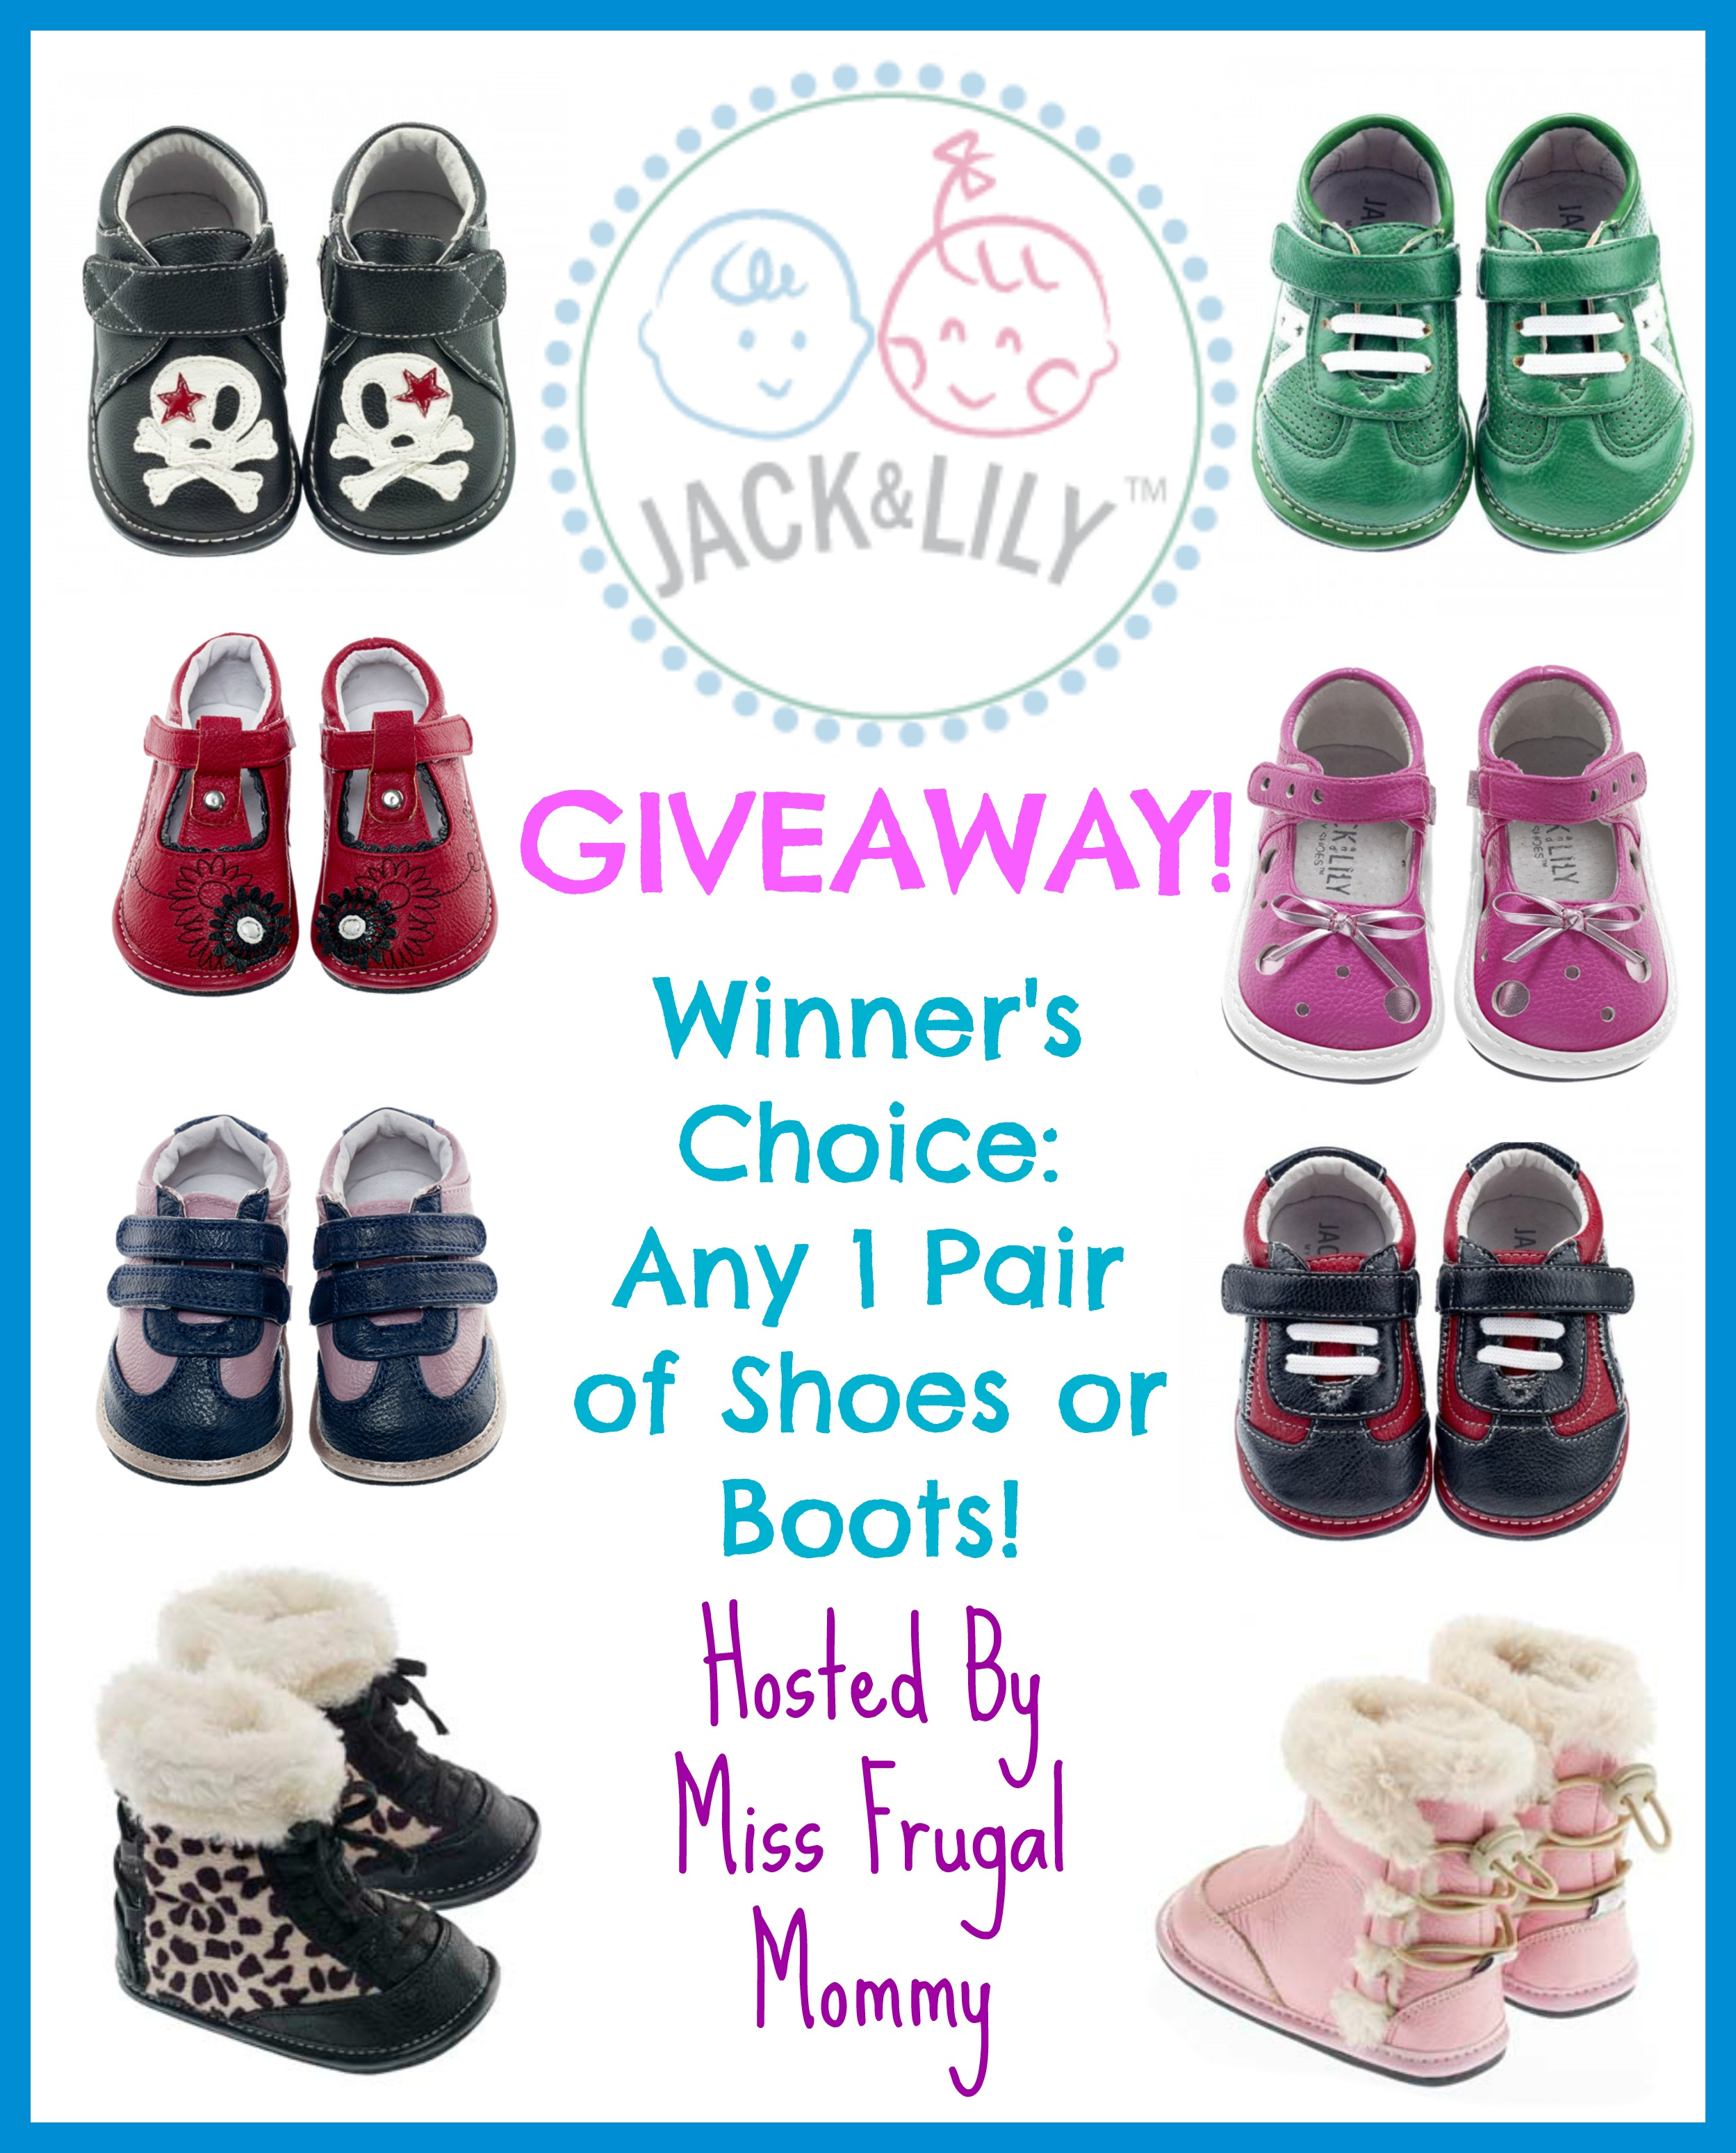 Jack & Lily Giveaway: Winner's Choice